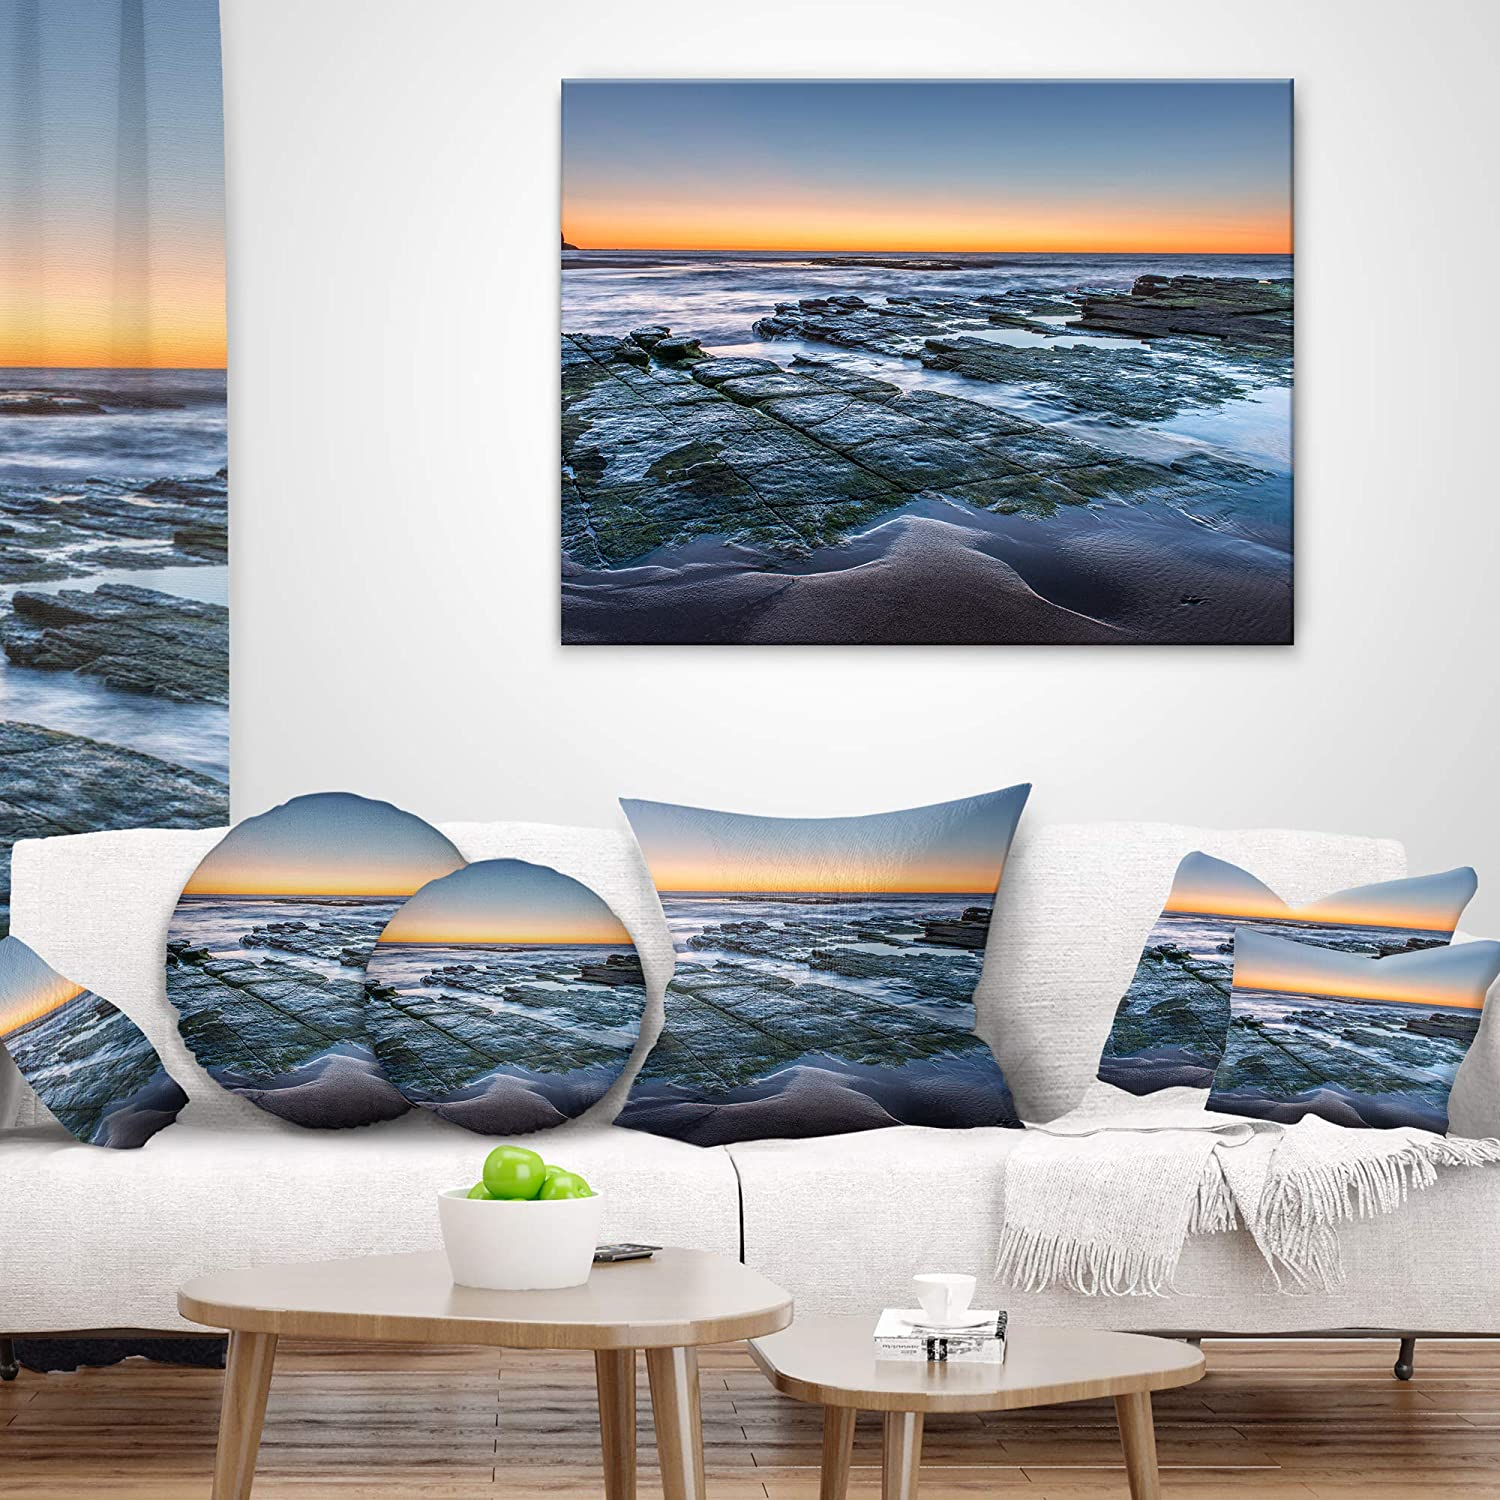 x 20 in Designart CU10243-12-20 Sunrise Over Wide Sydney Ocean Seashore Lumbar Cushion Cover for Living Room Sofa Throw Pillow 12 in Insert Printed On Both Side in